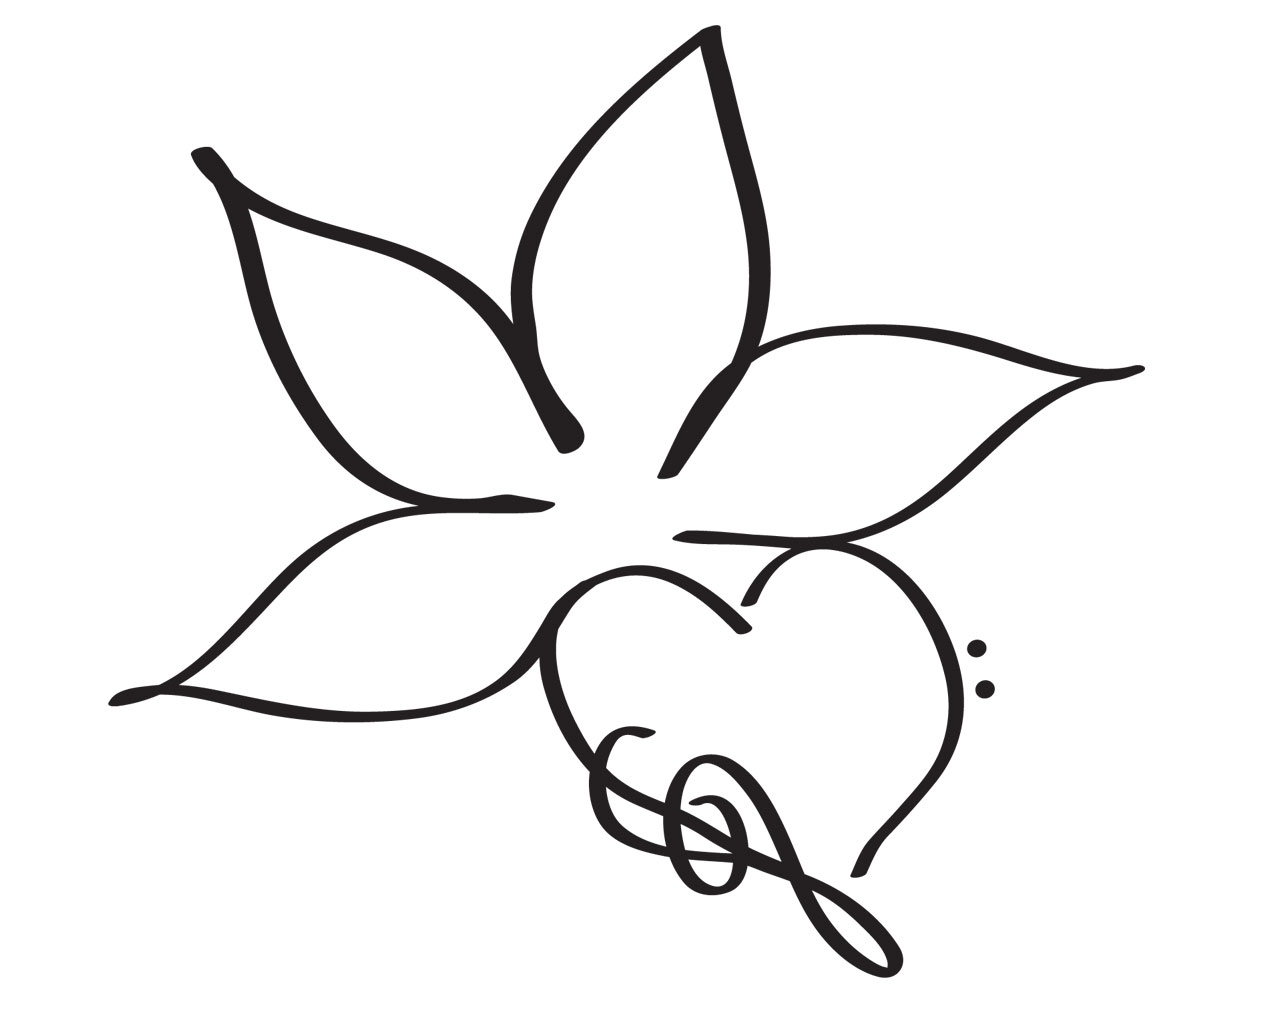 Simple cute flower drawings flowers healthy 1280x1024 cool tattoos designs draw tattooideas pretty easy drawing at getdrawings free for personal use mightylinksfo